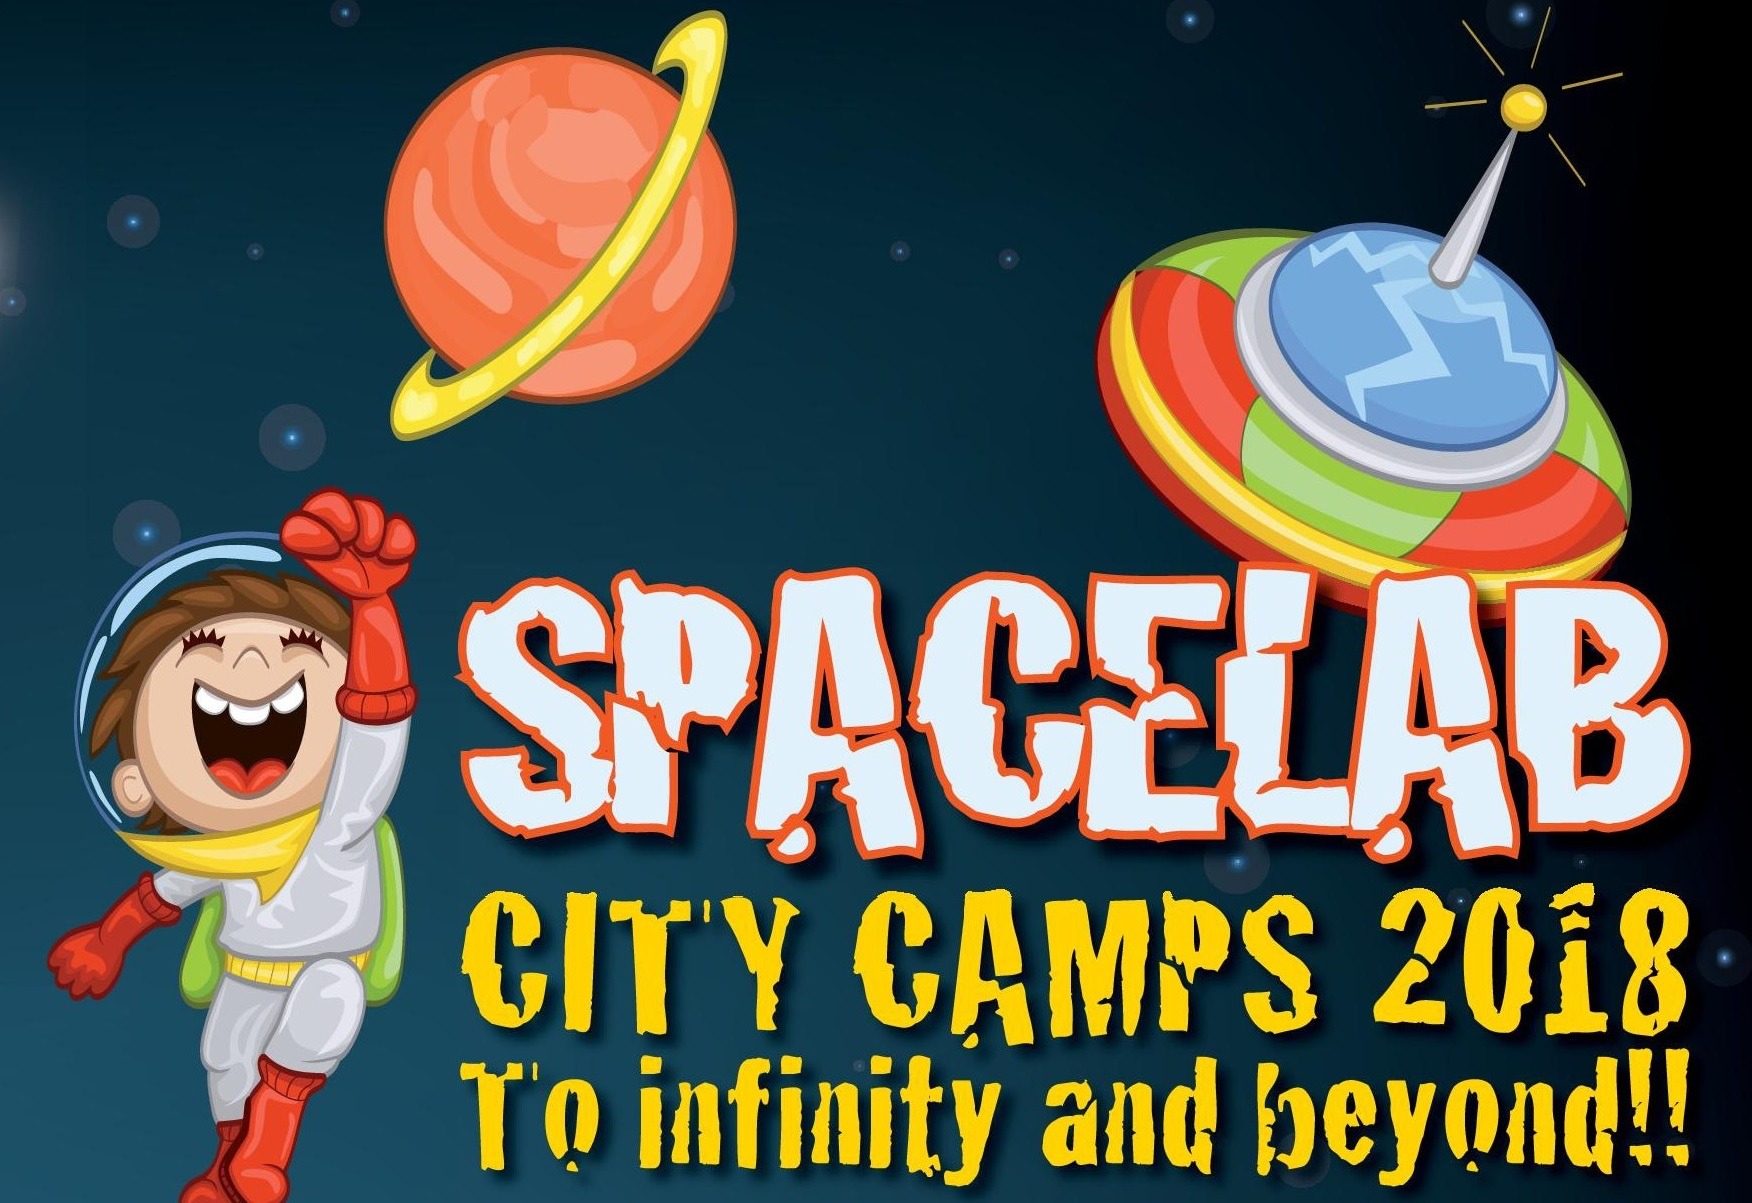 Spacelab City Camp 2018